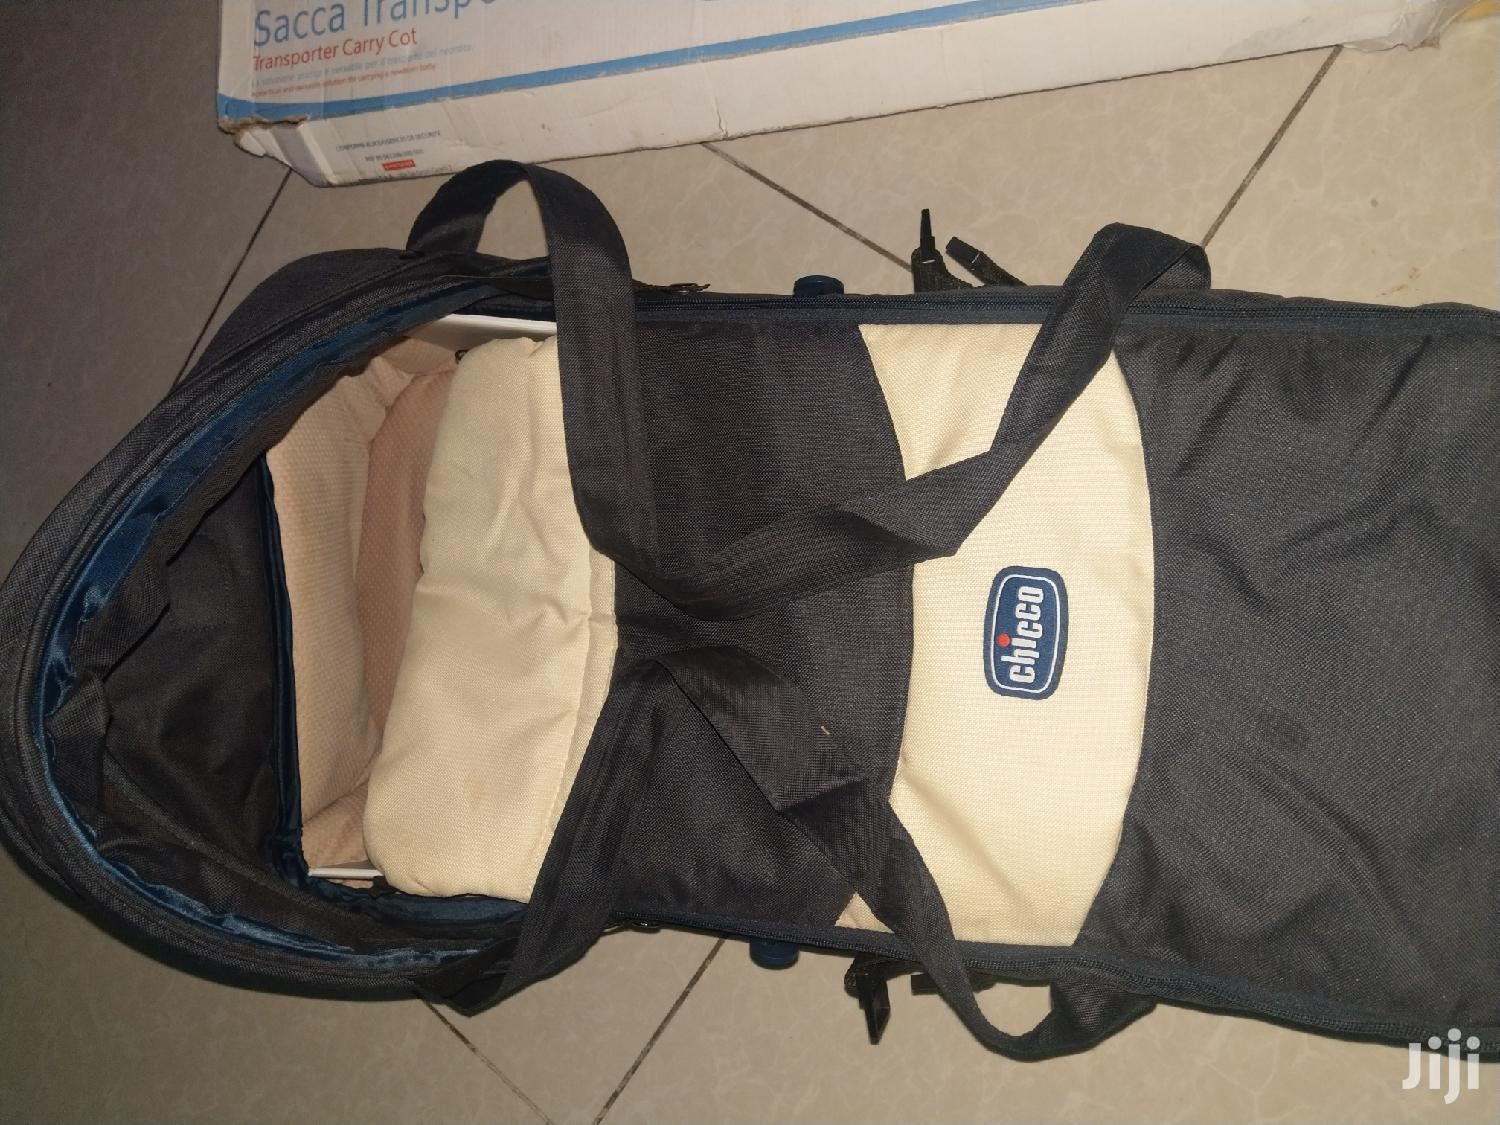 Archive: Baby Carry Cot Transporter Good Condition